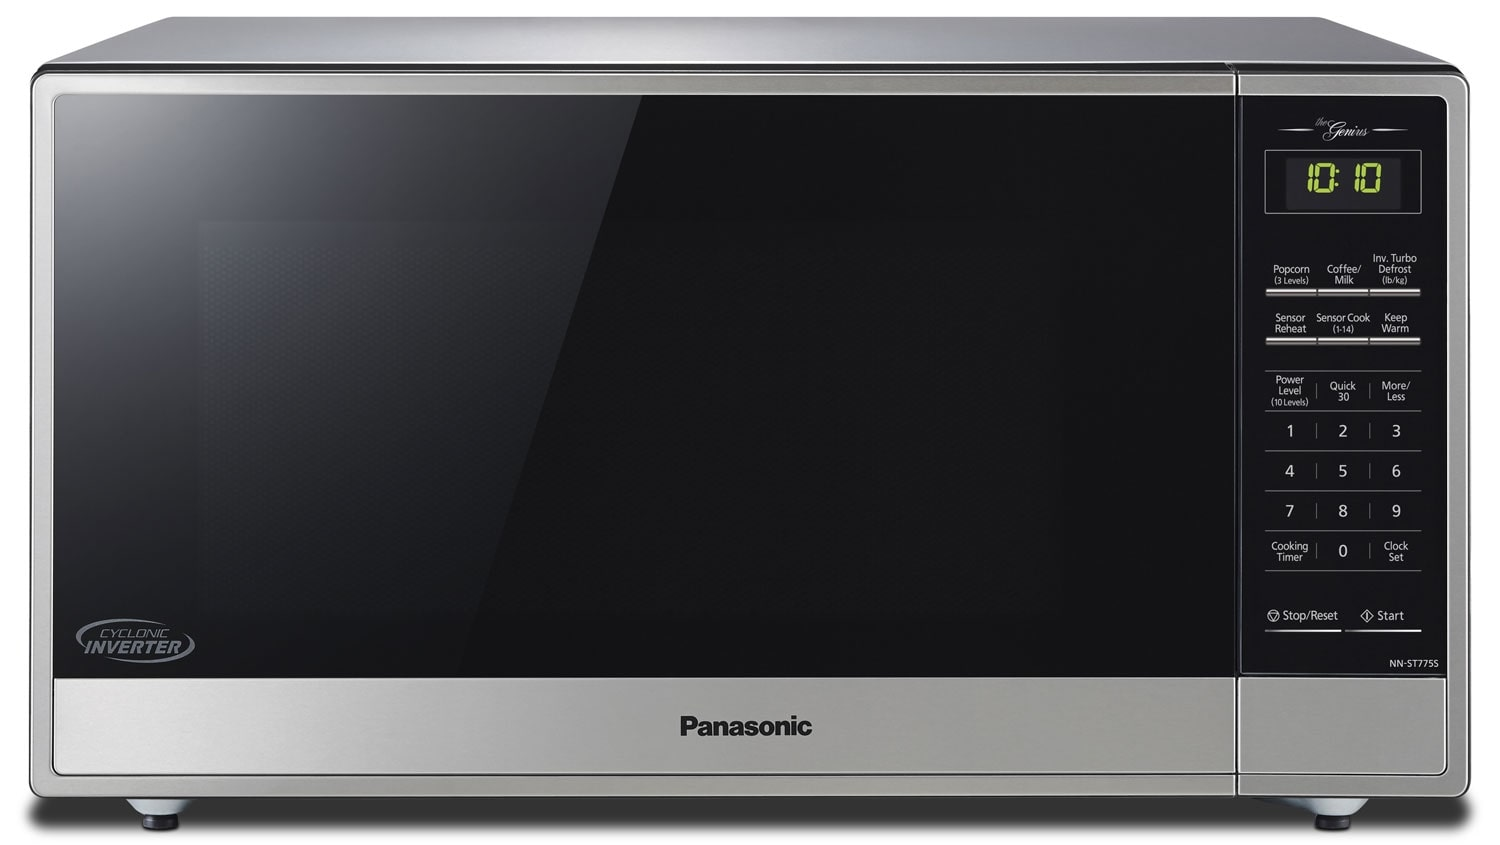 Panasonic 1 6 Cu Ft Countertop Microwave Stainless Steel United Furniture Warehouse